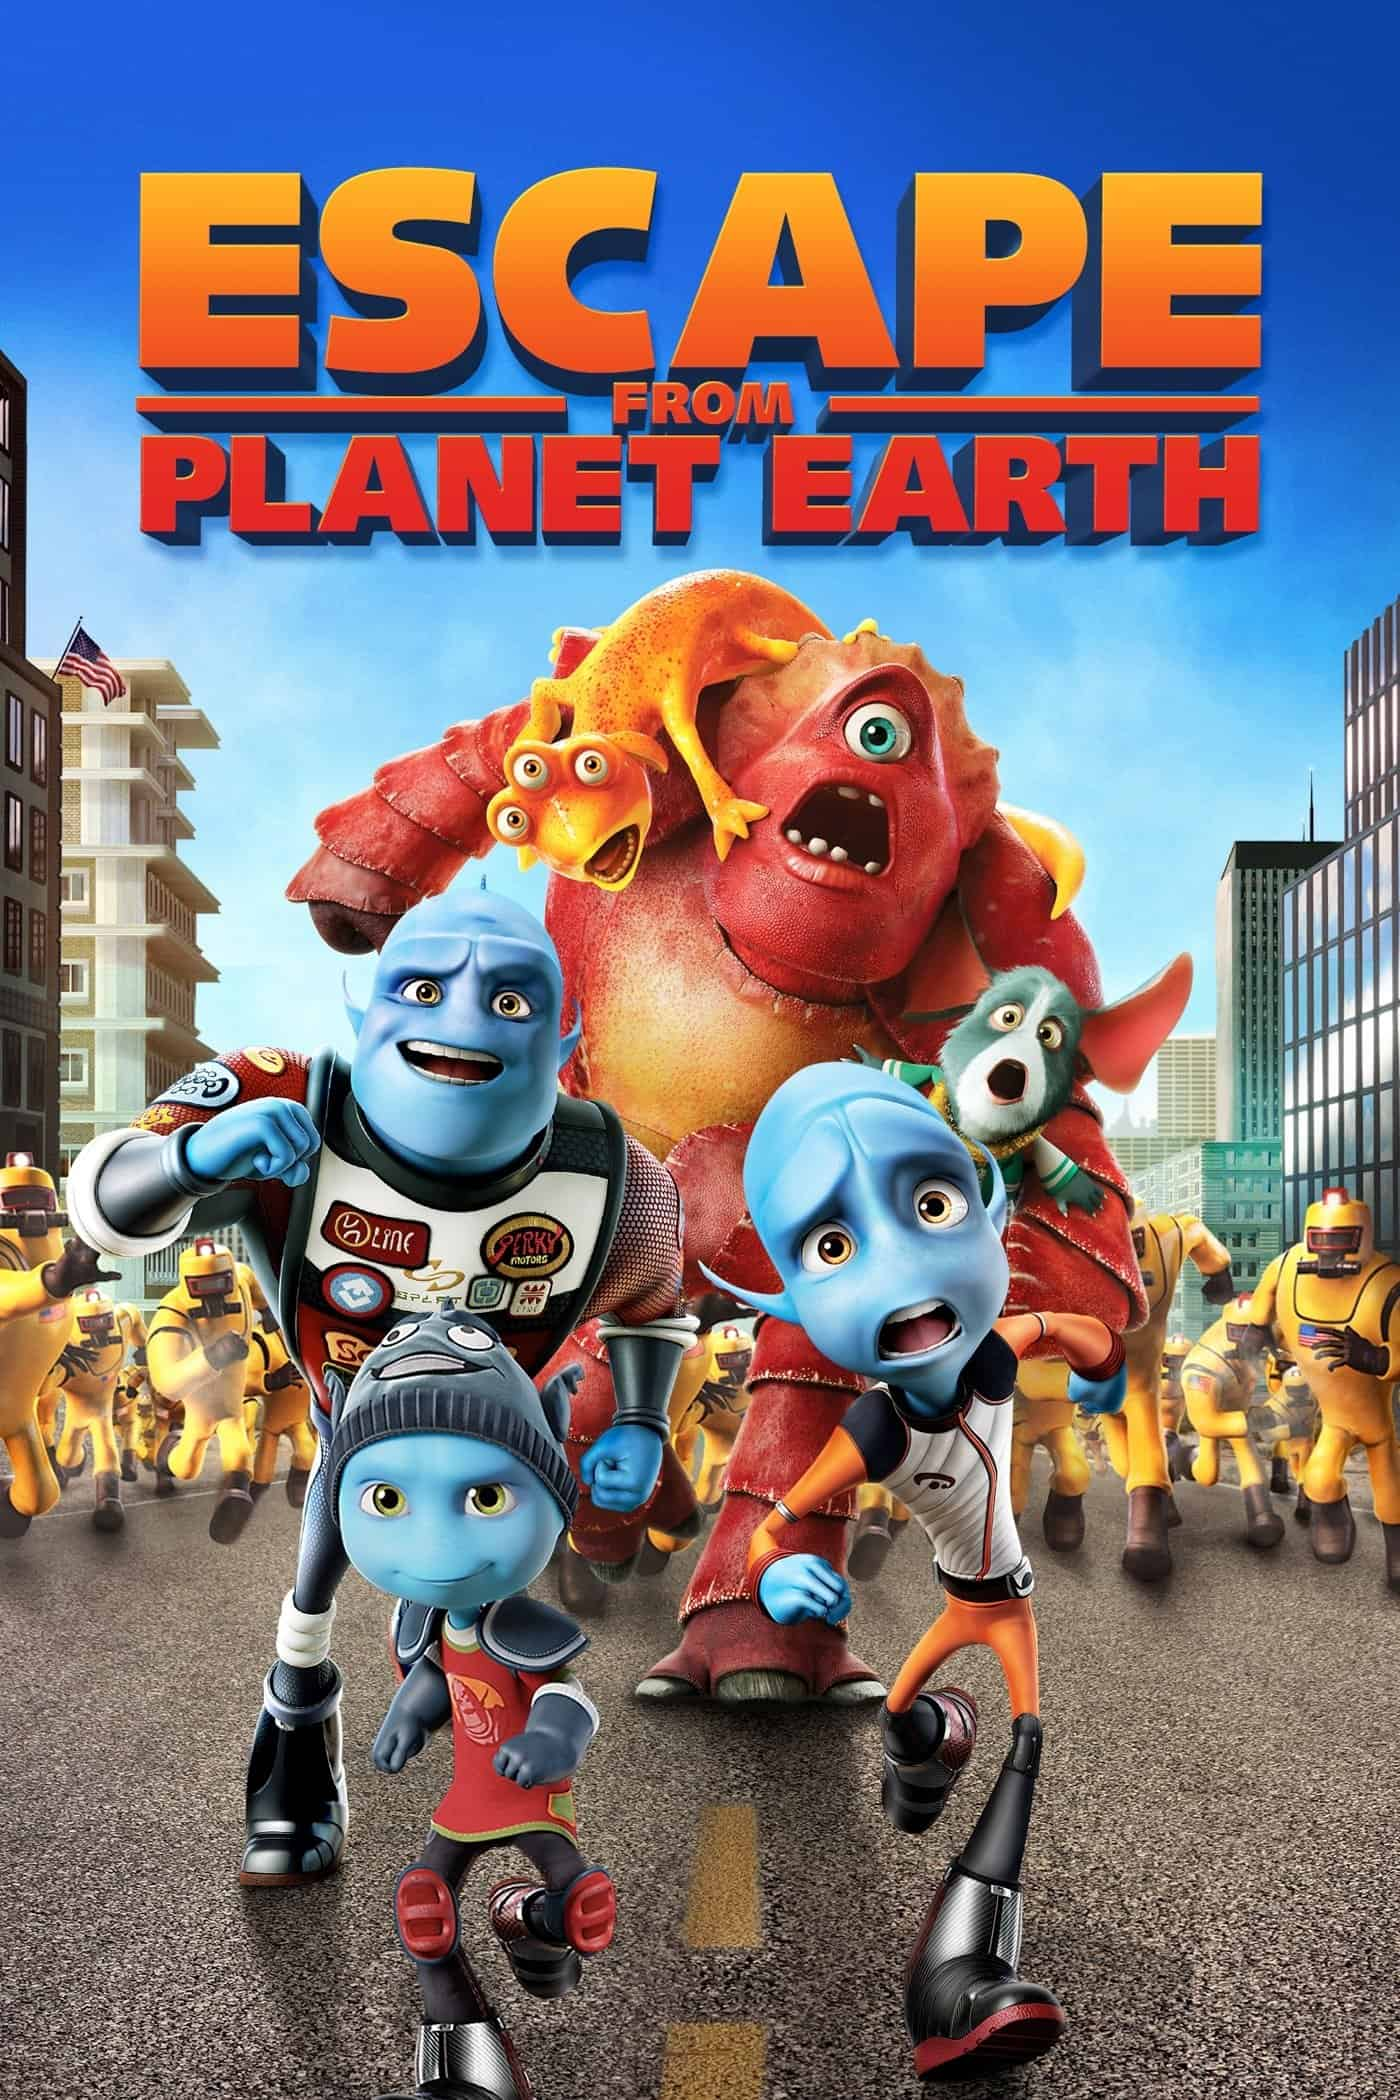 Escape from Planet Earth, 2013